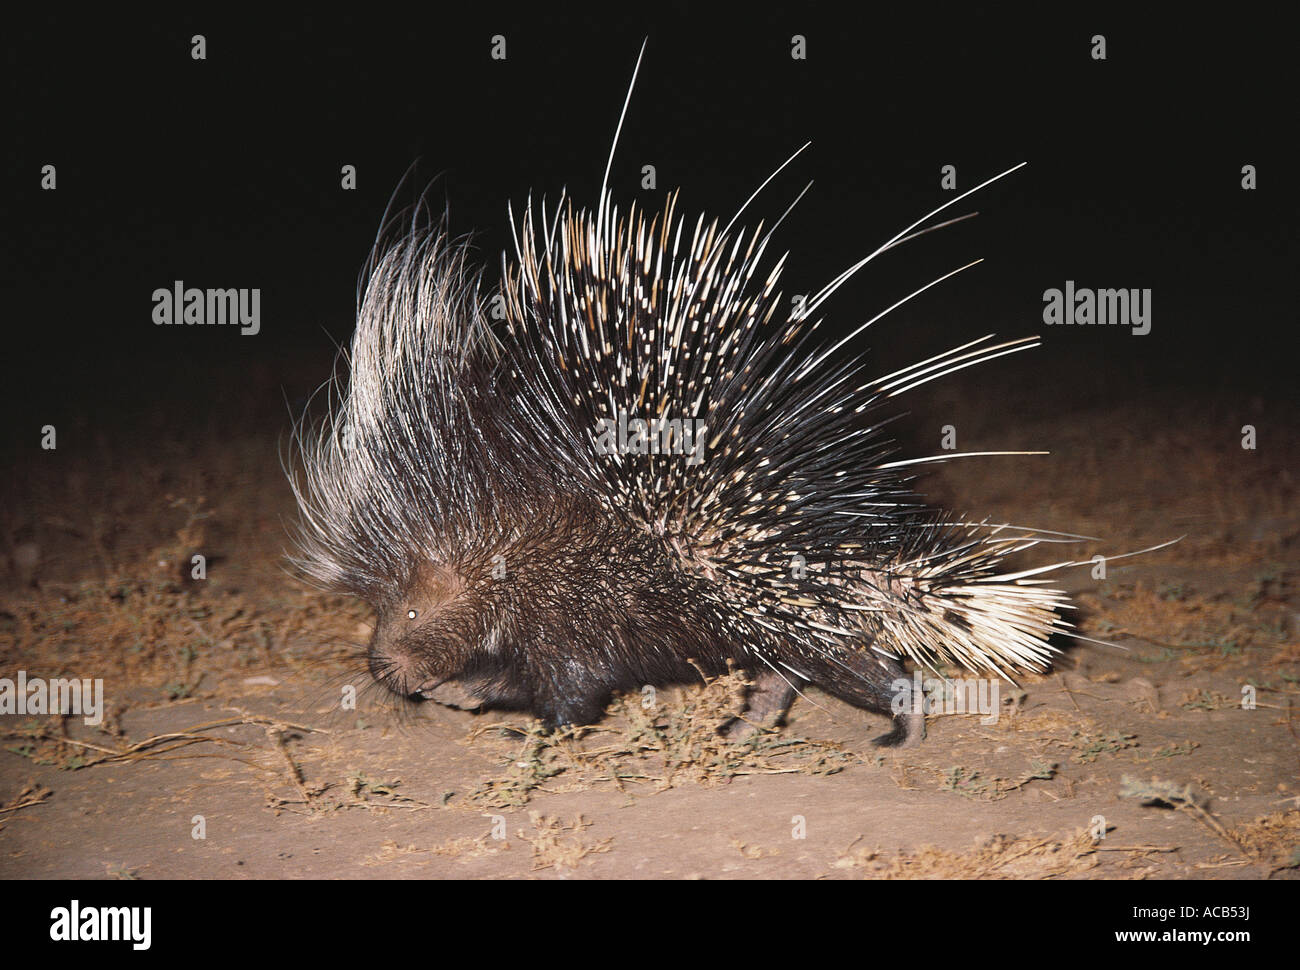 Porcupine South Luangwa National Park Zambia - Stock Image